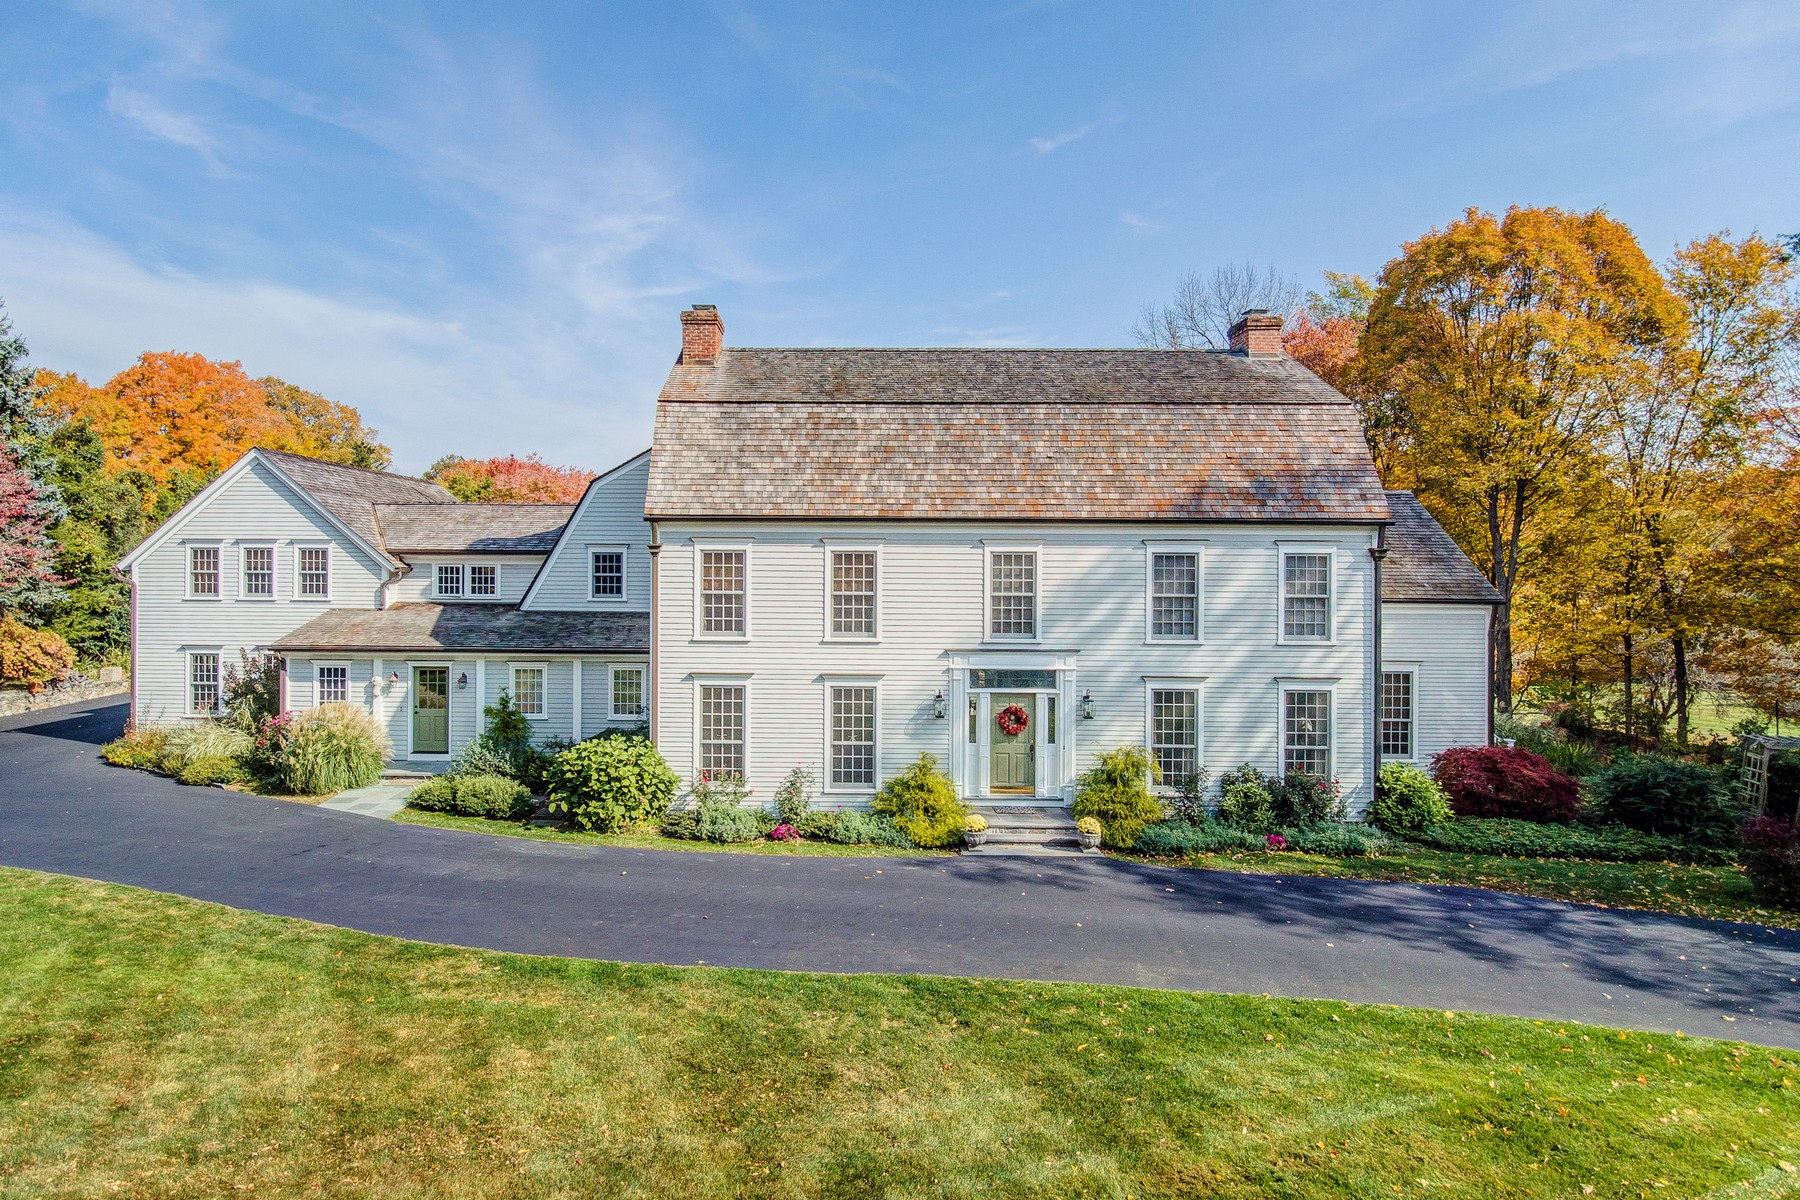 Single Family Home for Sale at Extraordinary Classic Colonial in Greenfield Hill 1220 Hillside Road Fairfield, Connecticut, 06824 United States